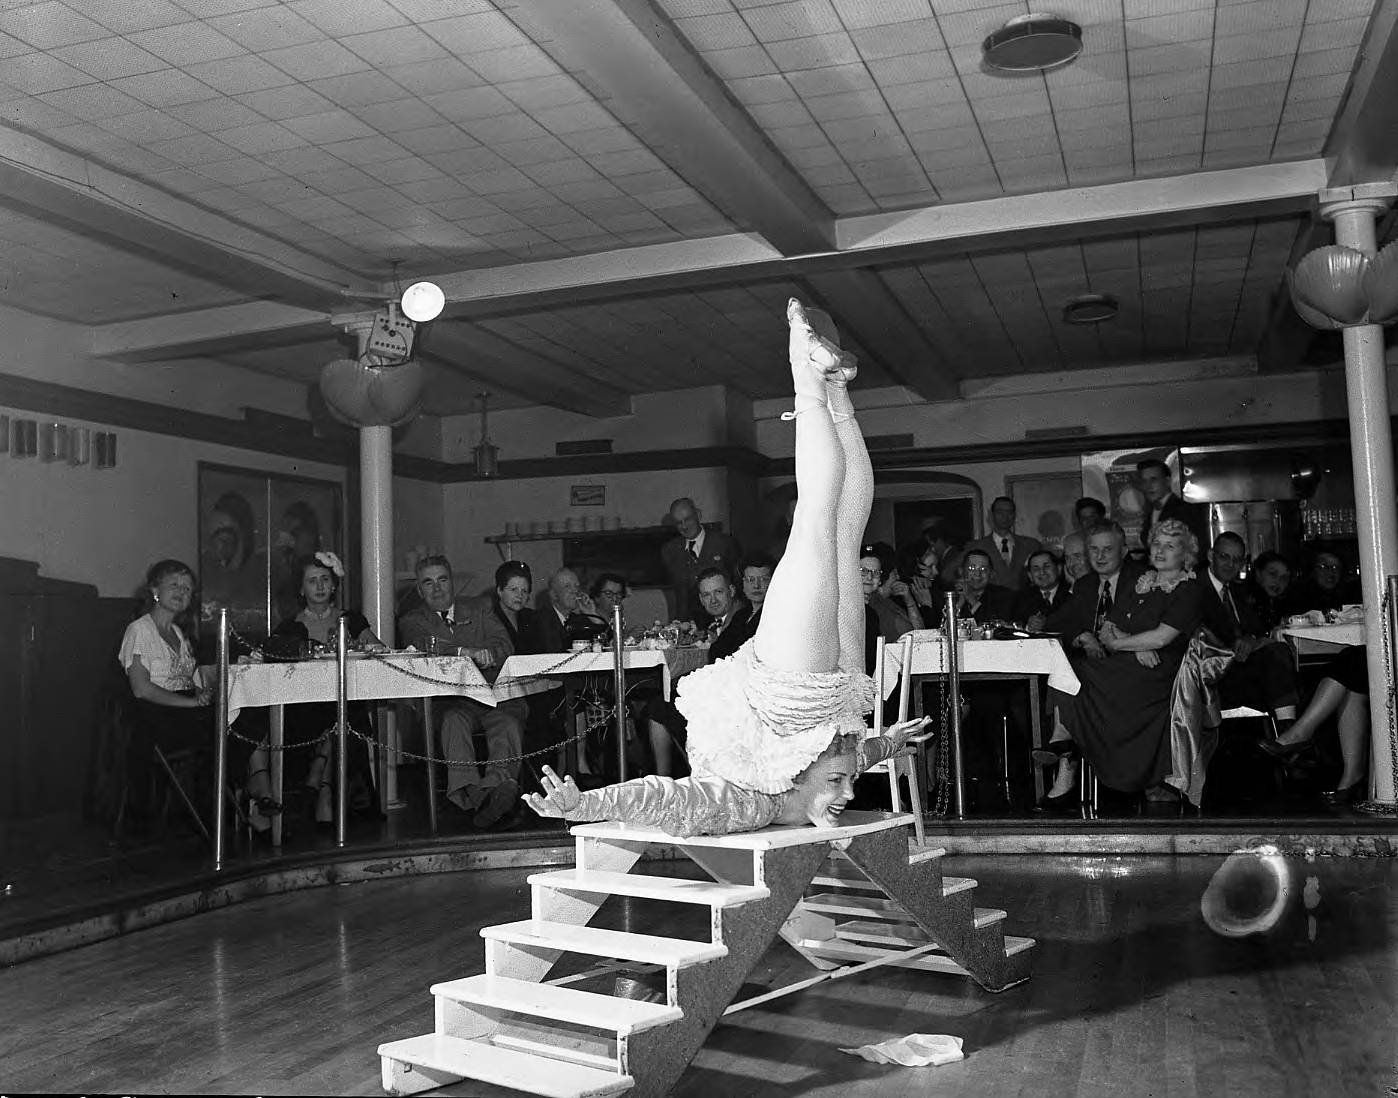 DescriptionA woman acrobat provided part of the evenings entertainment at the Halloween party sponsored by the Tacoma Athletic Commission on October 30, 1950. In this photograph she is balancing on the platform at the top of a small step-platform with her toes pointed straight up at the ceiling. The acrobate is probably Patsy Jean Smith, who studied acrobatics at the Barclay School in Seattle. Mr. Barclay also taught at the Lewis Harter Studios, 945 1/2 Broadway in Tacoma. The Athletic Commission Halloween party was held at the Top of the Ocean.